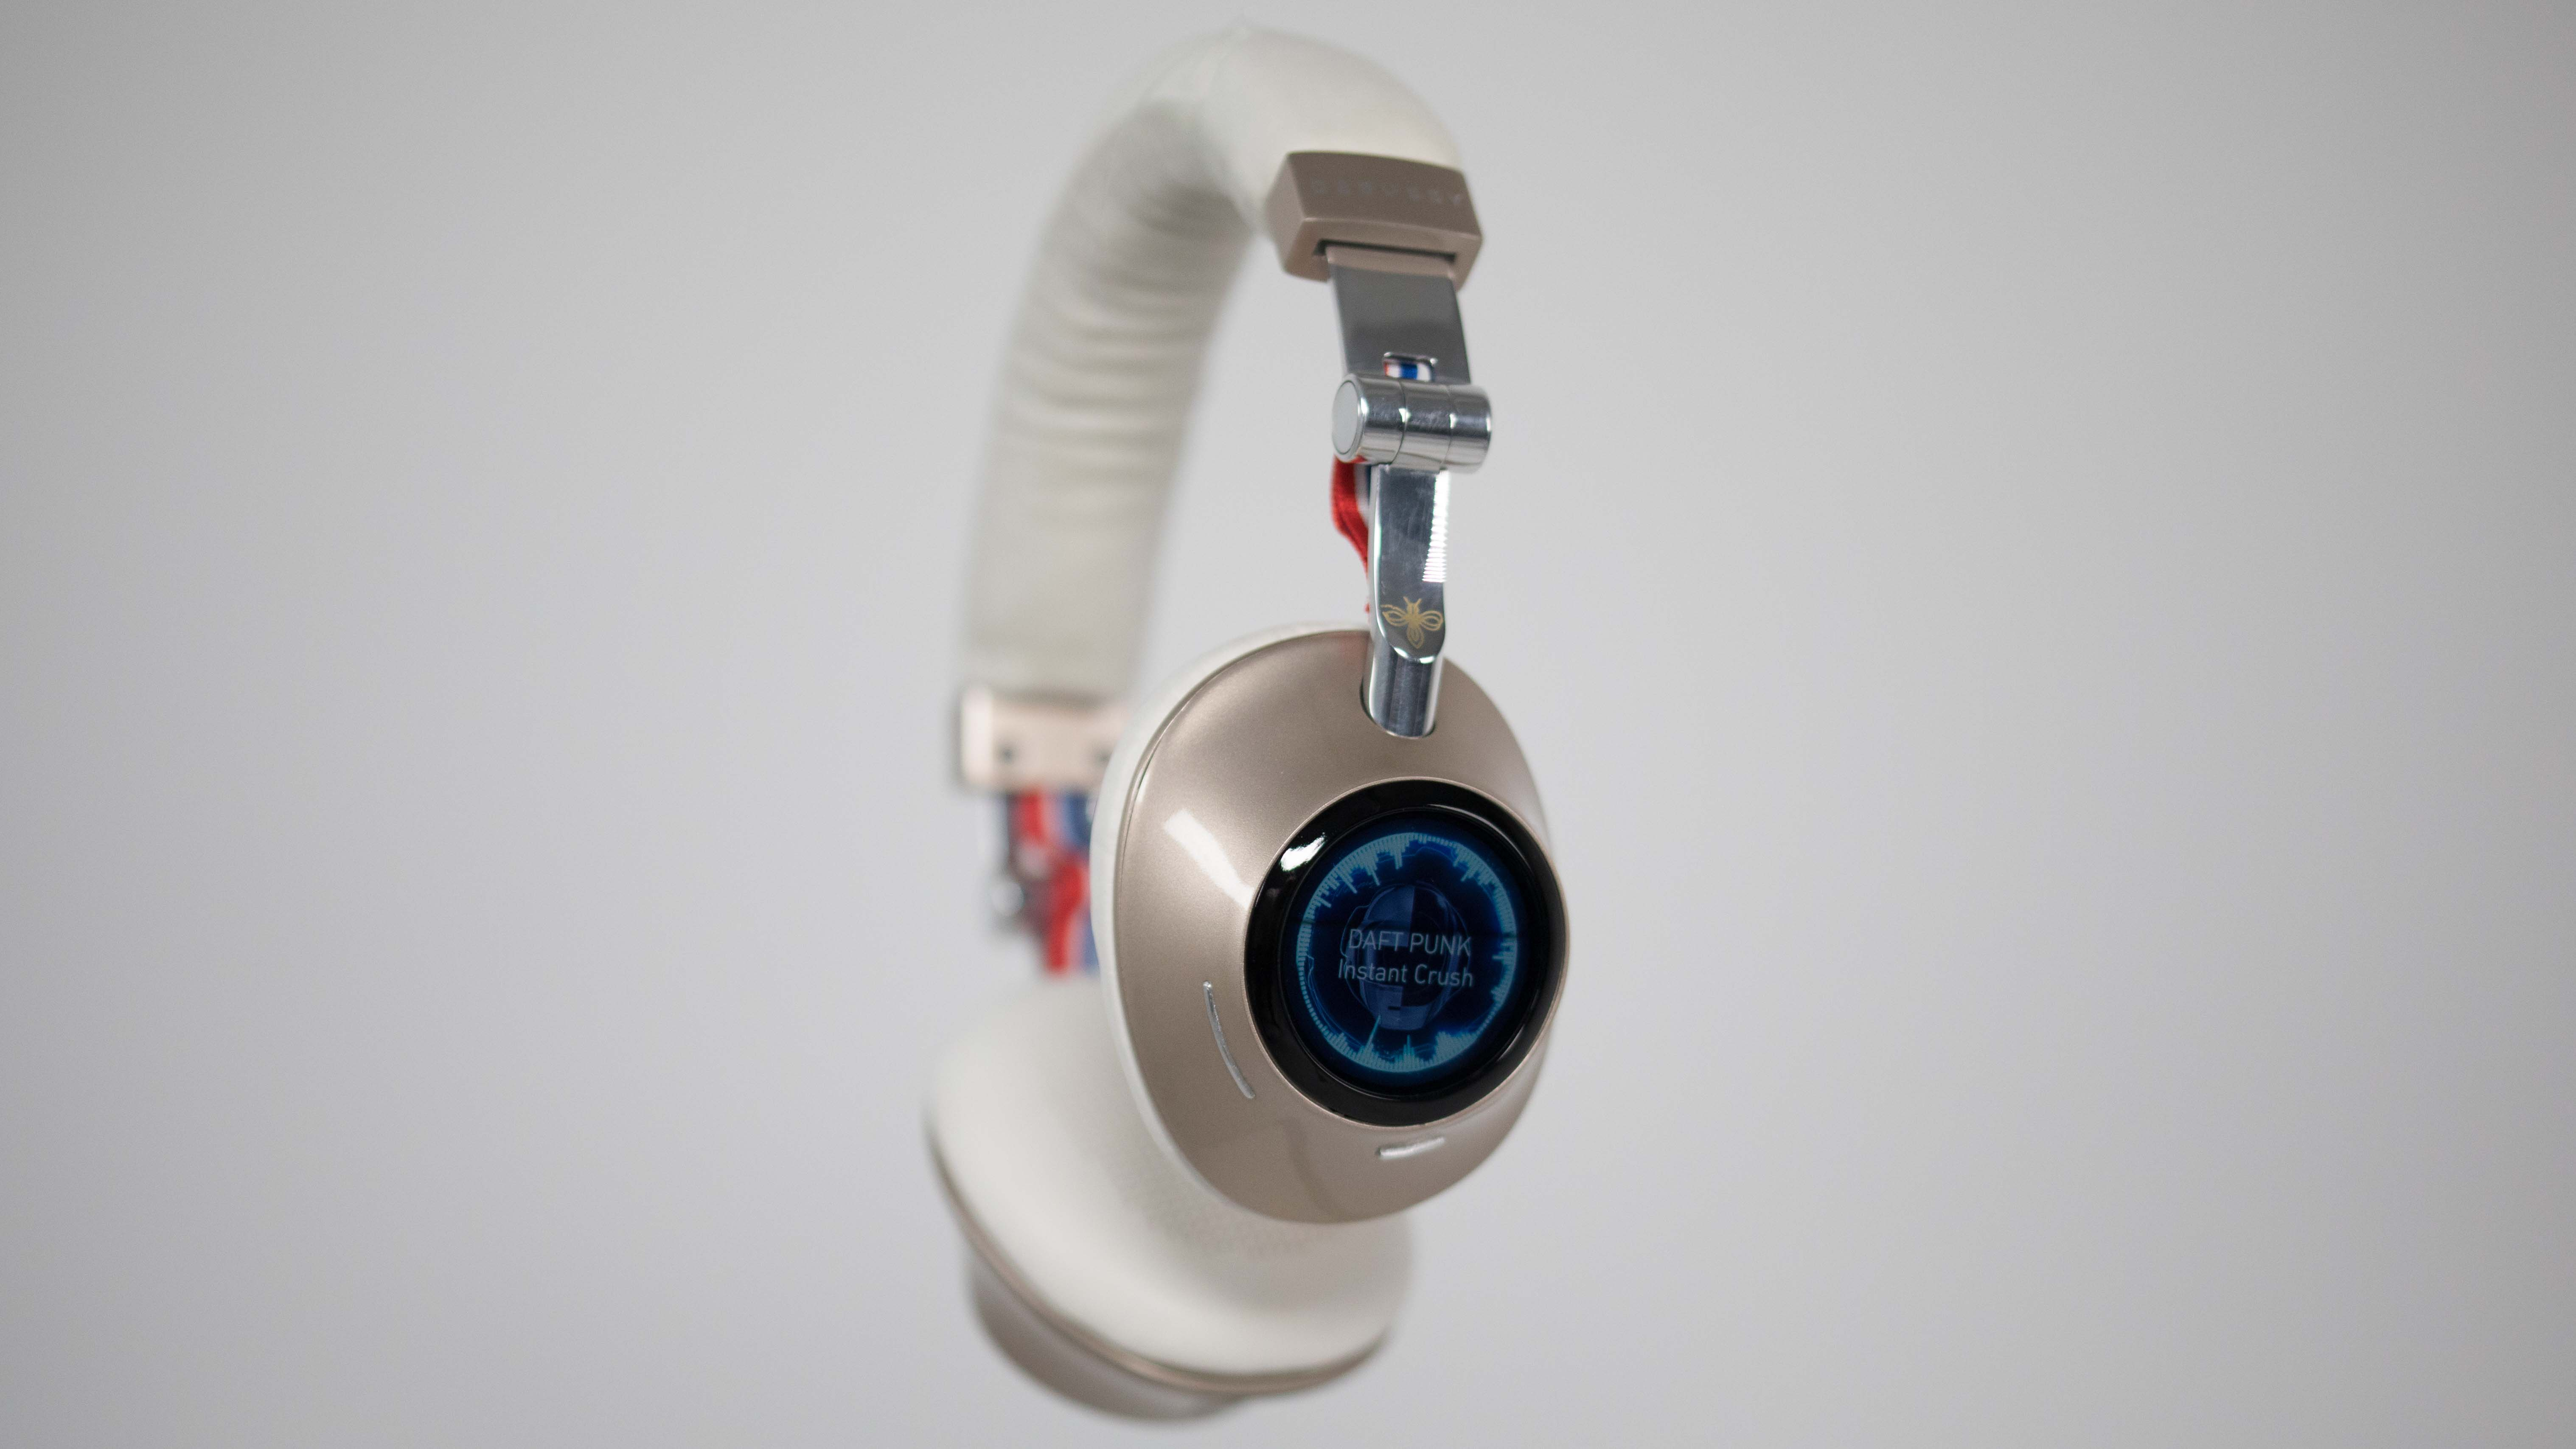 The future of headphones: touchscreen displays and integrated streaming